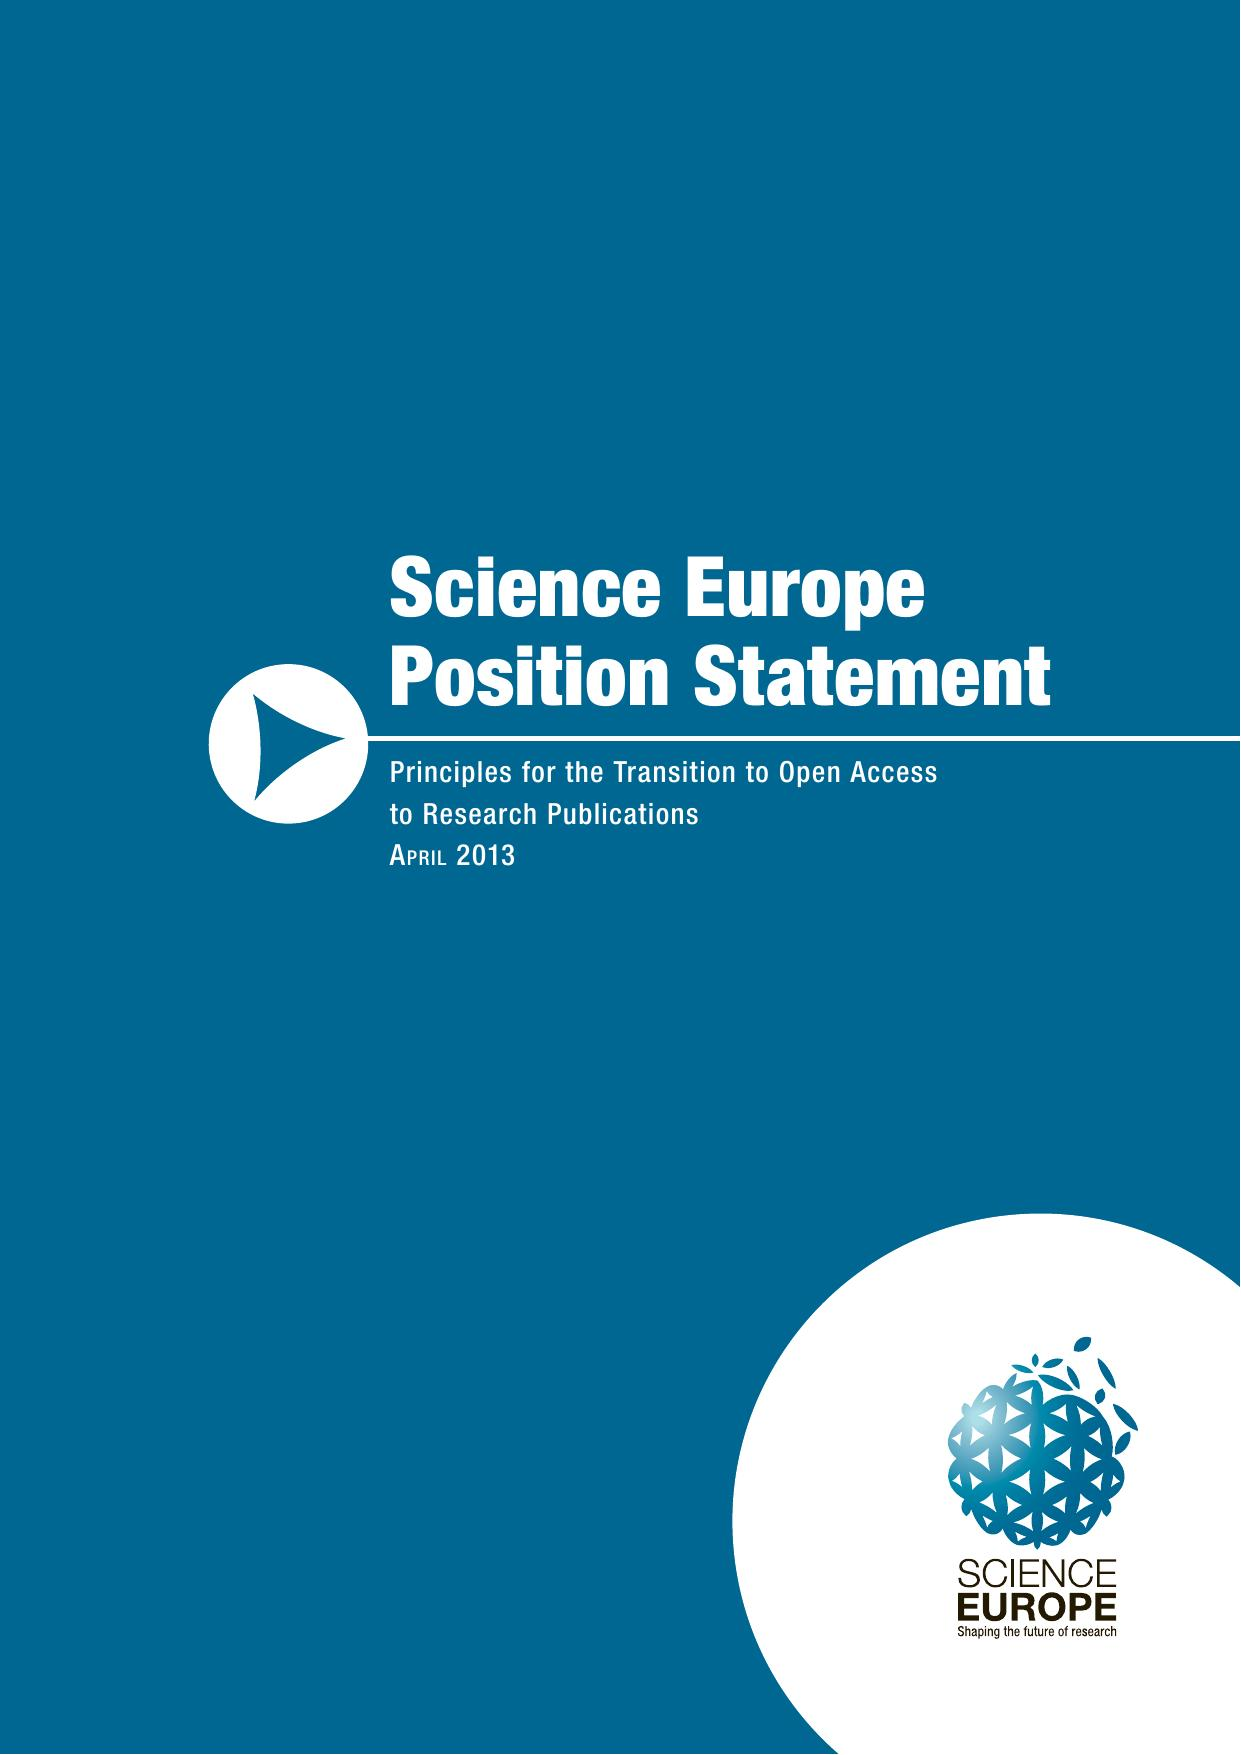 New Science Europe Principles on Open Access Publisher Services   Science Europe